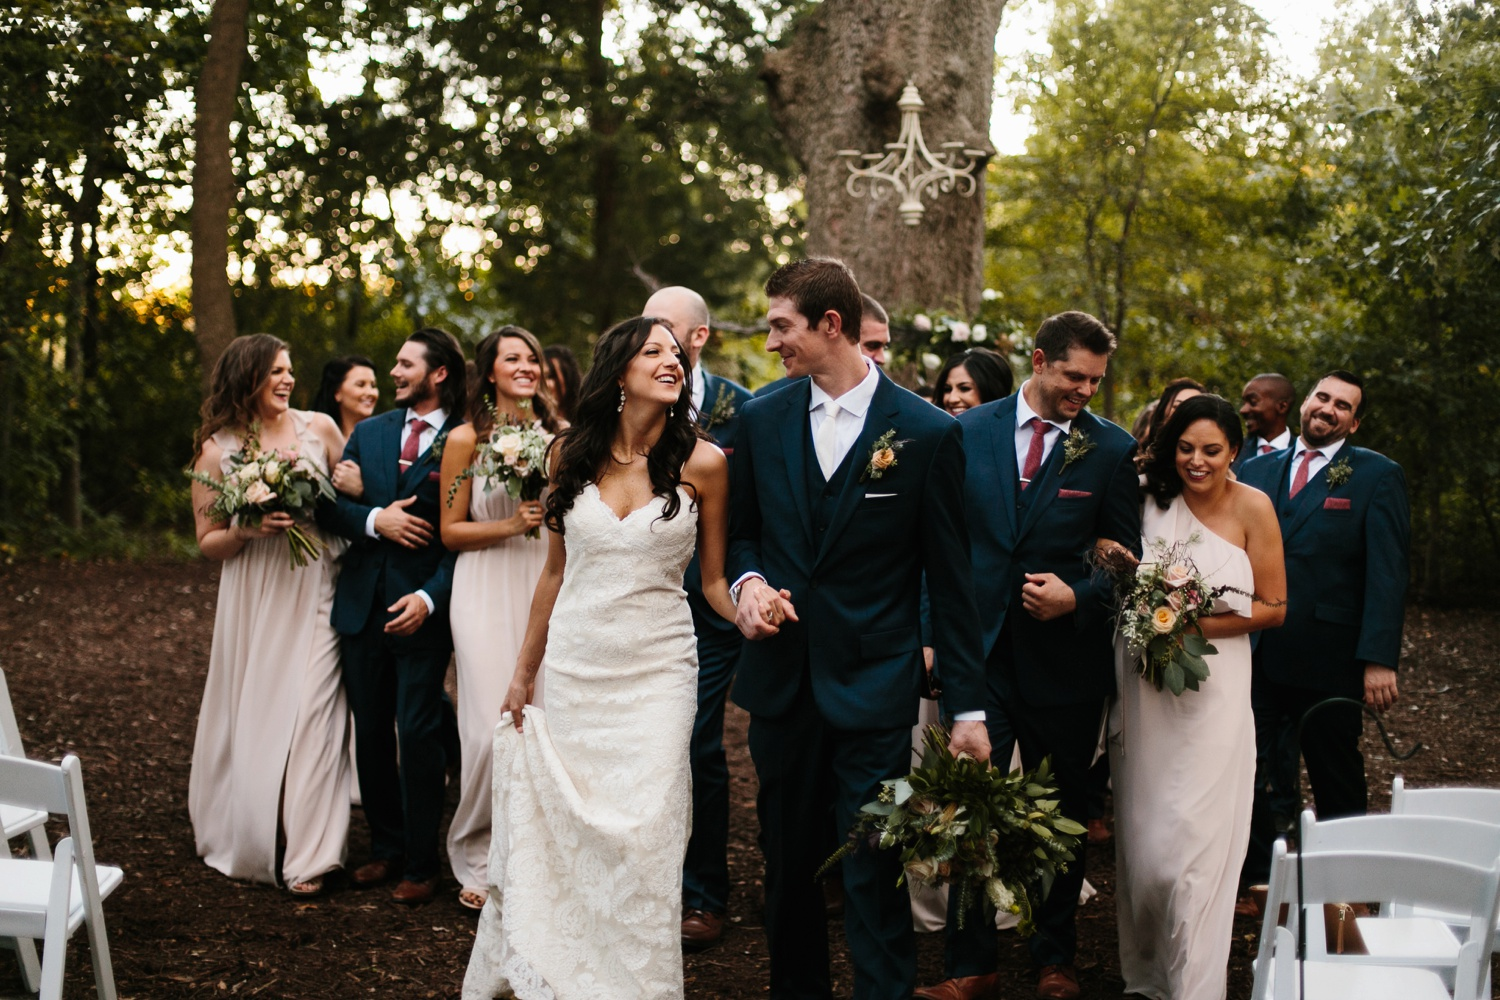 Erica + Henry | a bohemian inspired wedding at Chandlers Gardens in Salina, TX by North Texas Wedding Photographer Rachel Meagan Photography 099